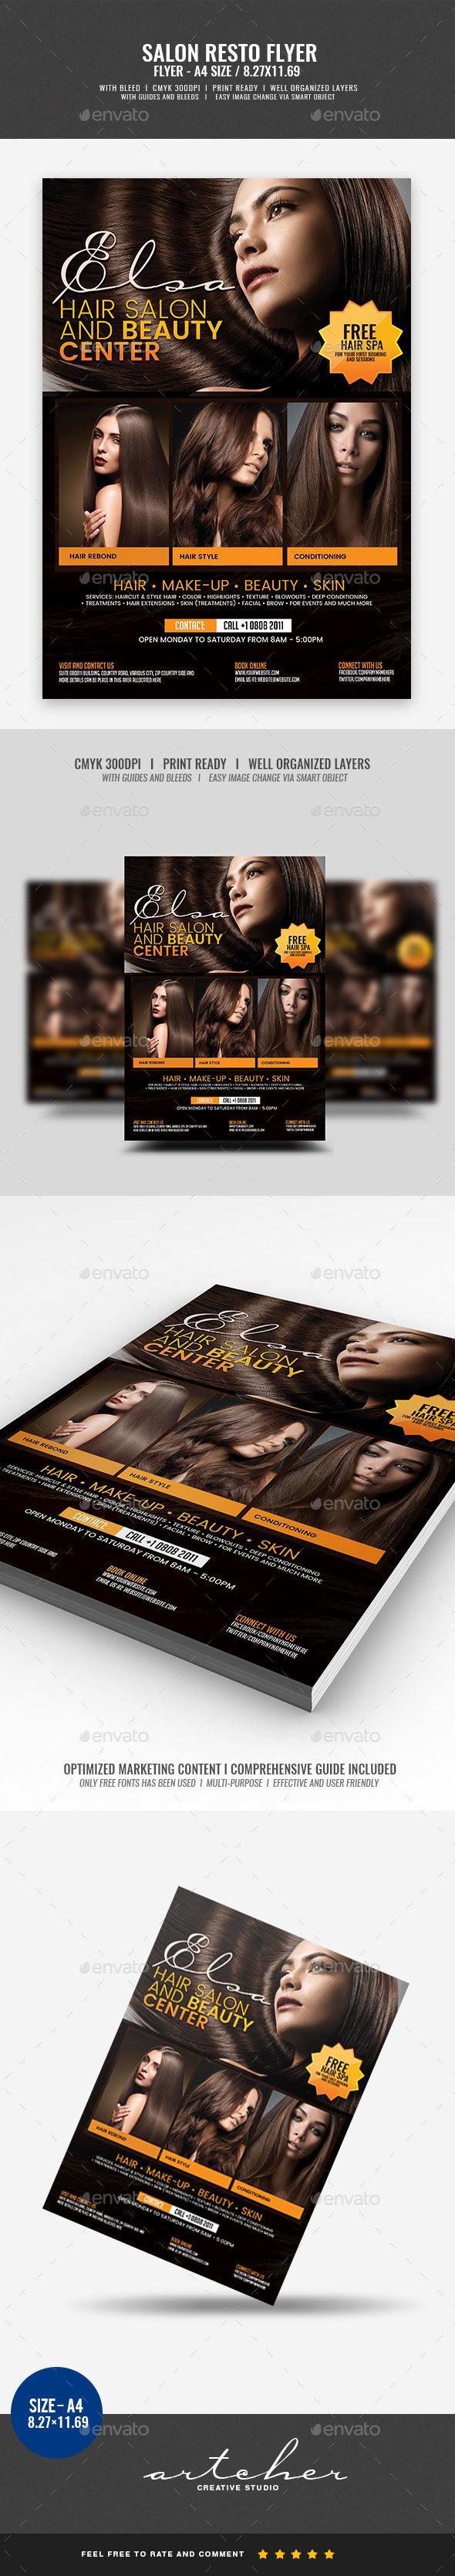 Hair Salon Flyer - Flyers Print Templates